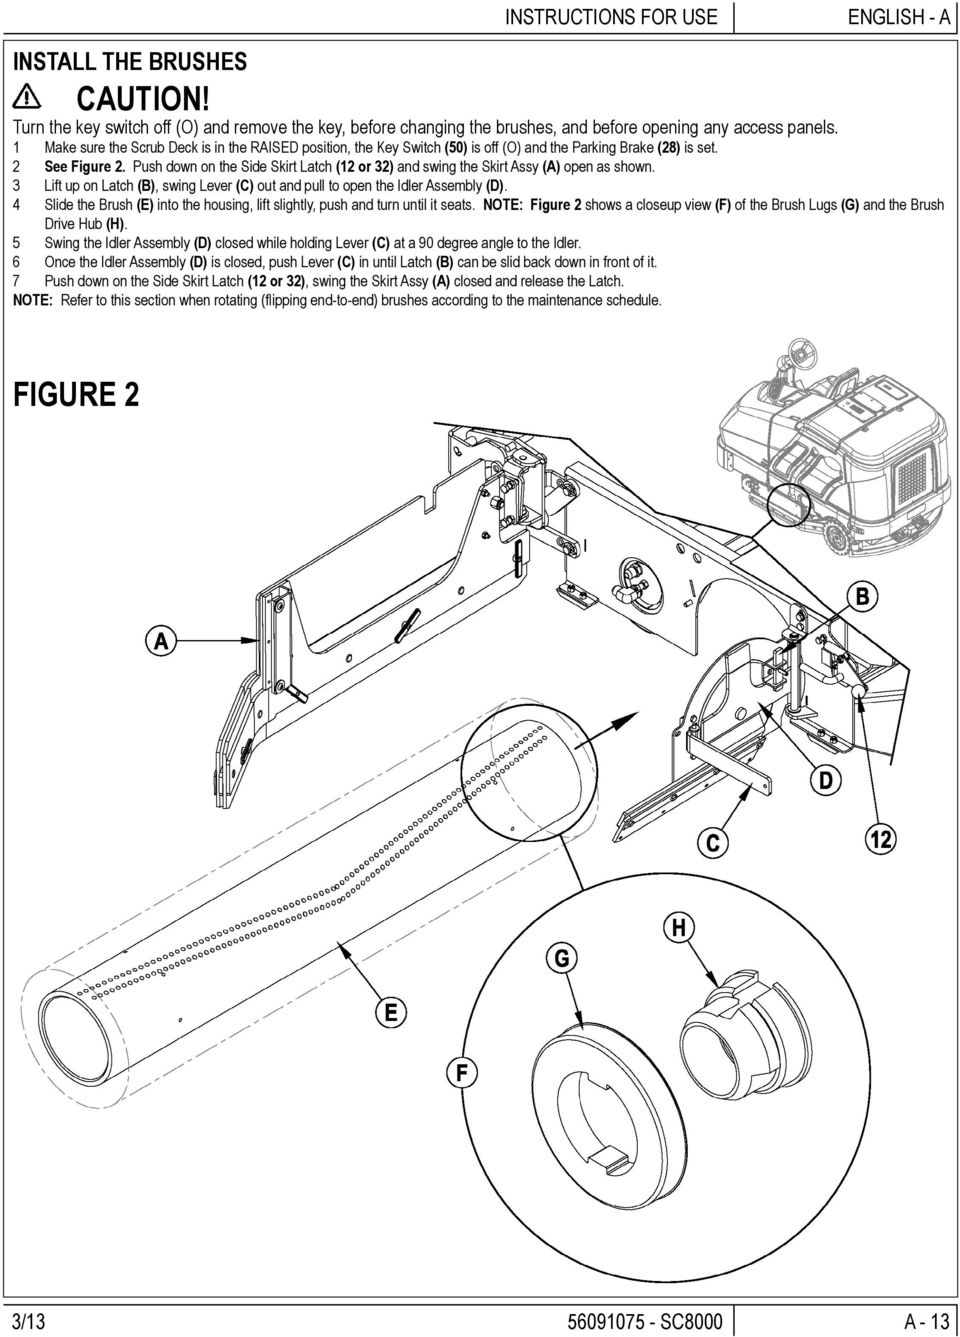 Push down on the Side Skirt Latch (12 or 32) and swing the Skirt Assy (A) open as shown. 3 Lift up on Latch (B), swing Lever (C) out and pull to open the Idler Assembly (D).